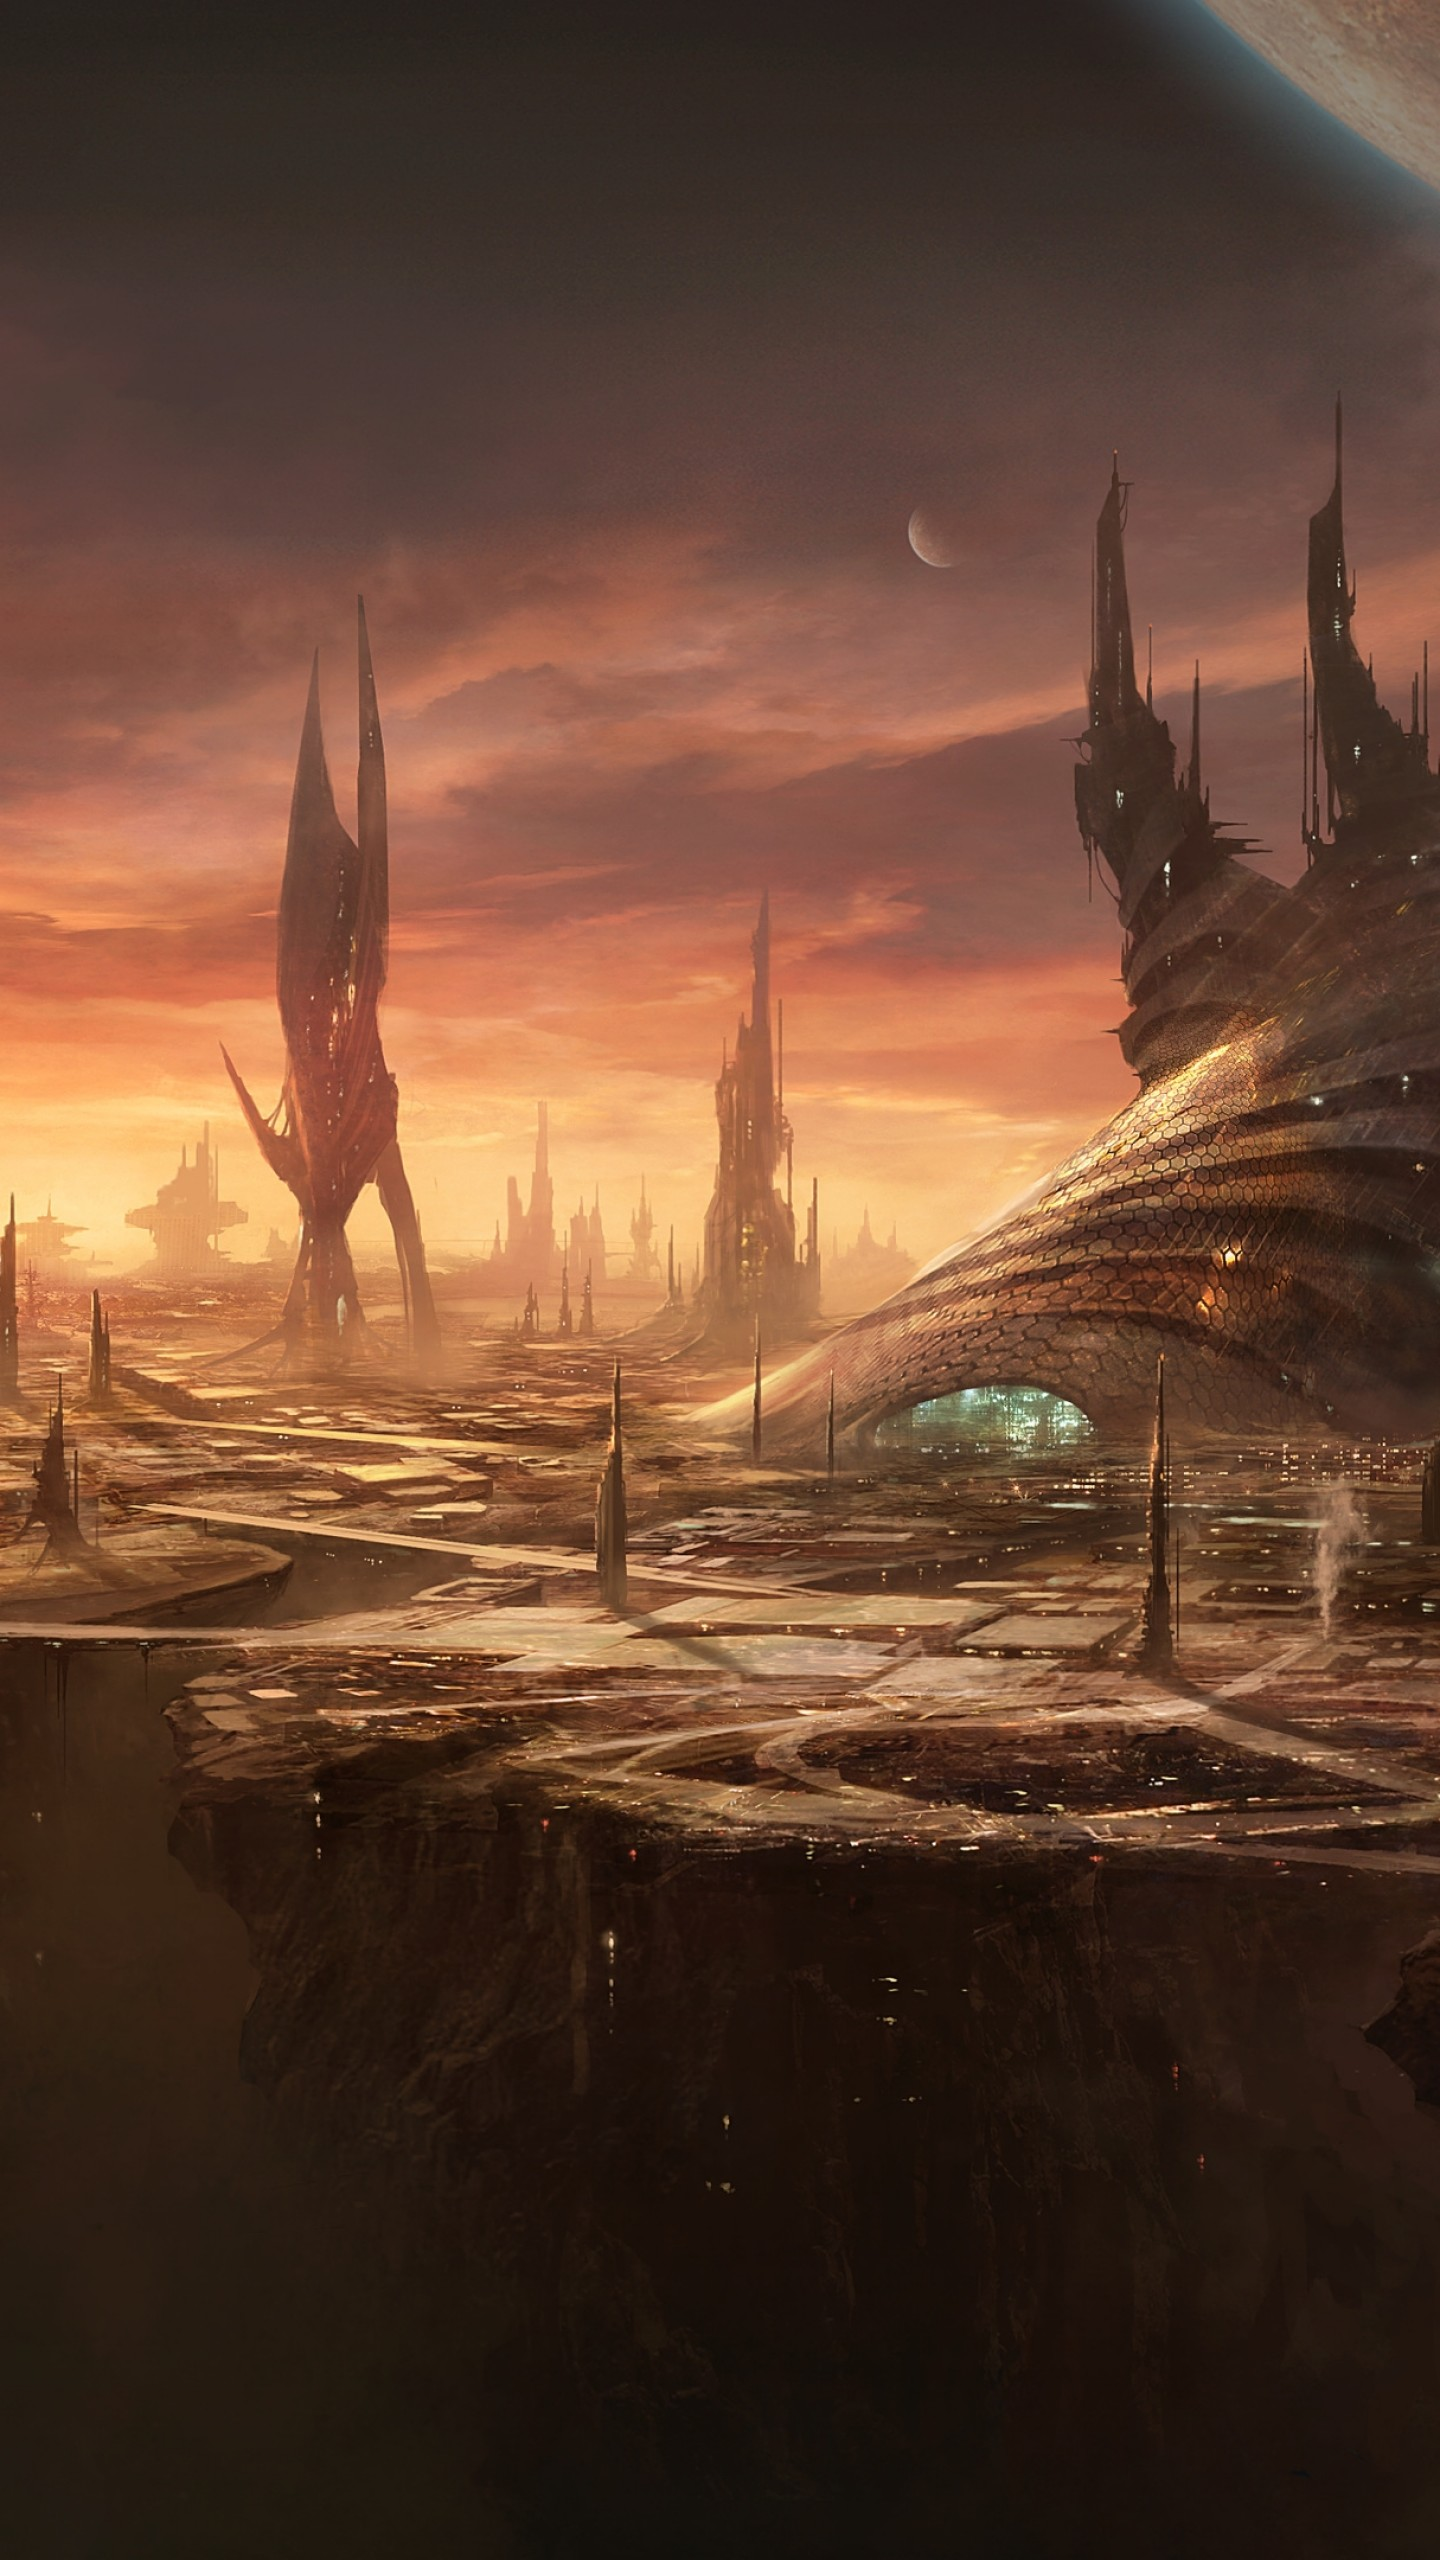 Ps4 Wallpaper Hd Wallpaper Stellaris Pc Playstation Ps4 Xbox One Games